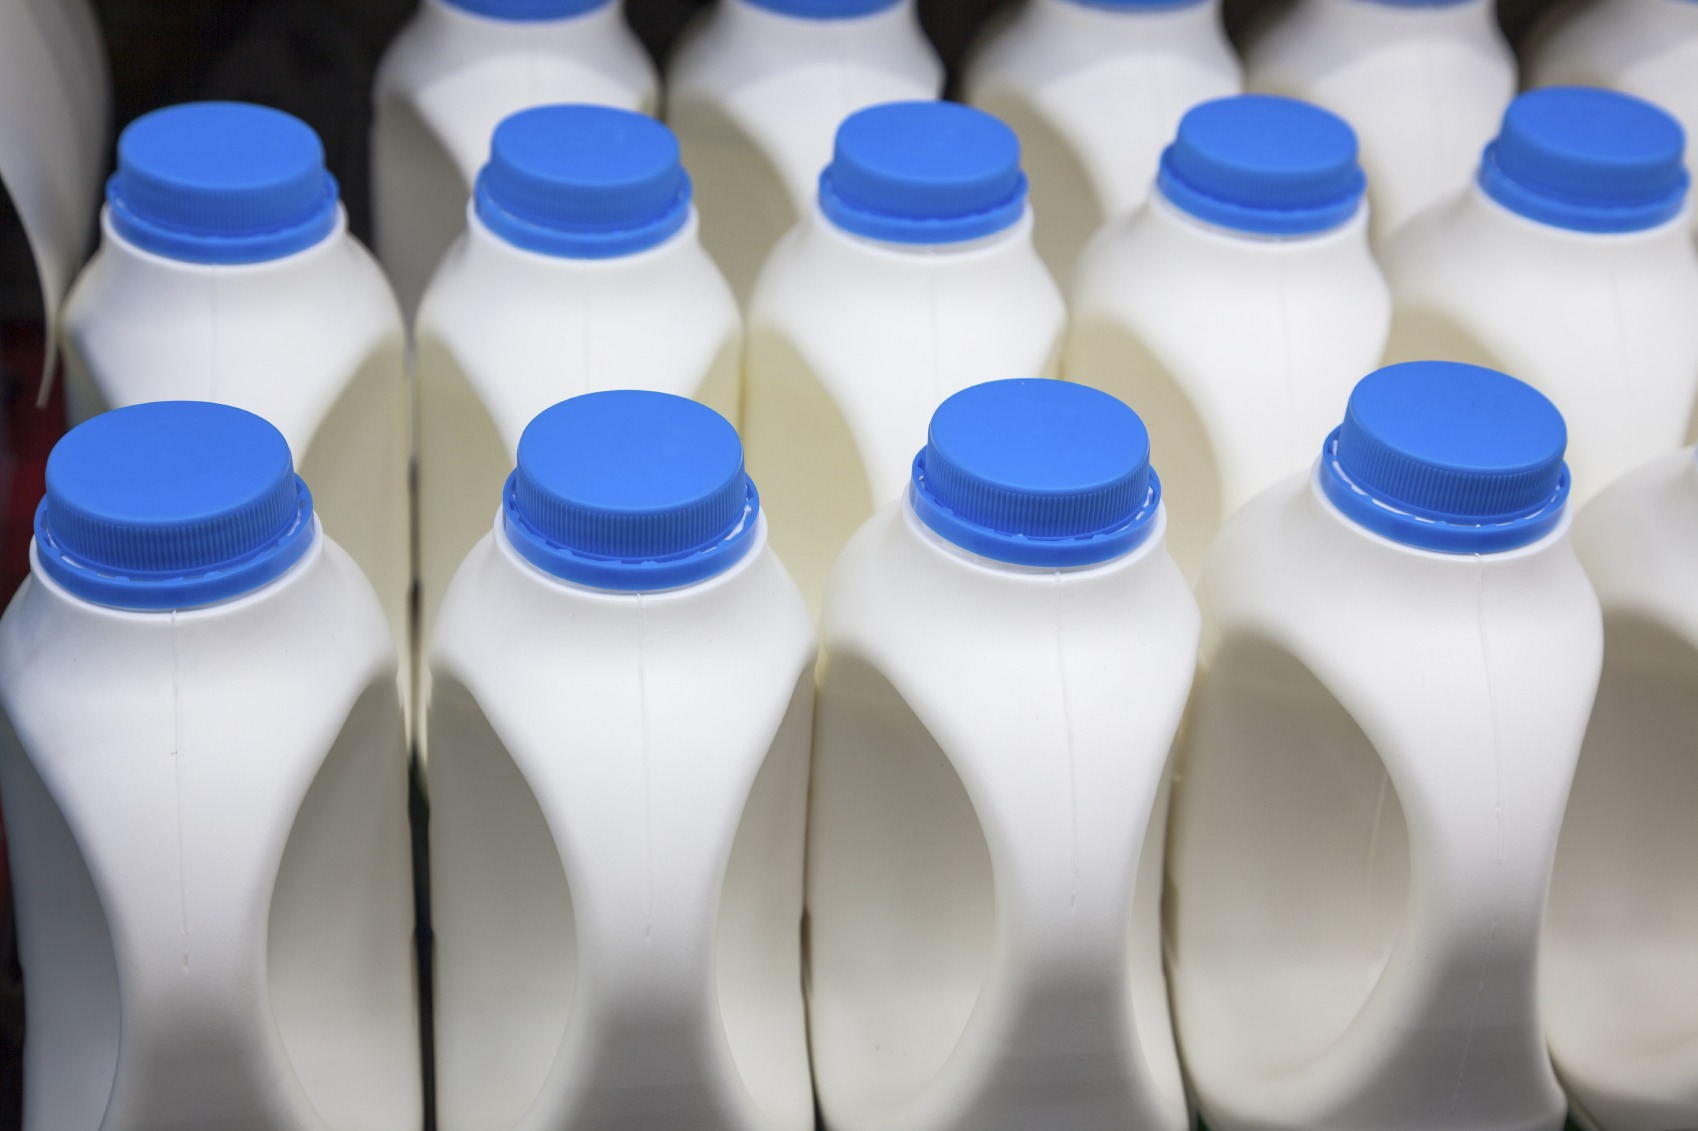 One Reason That Milk Could Cost $8 A Gallon